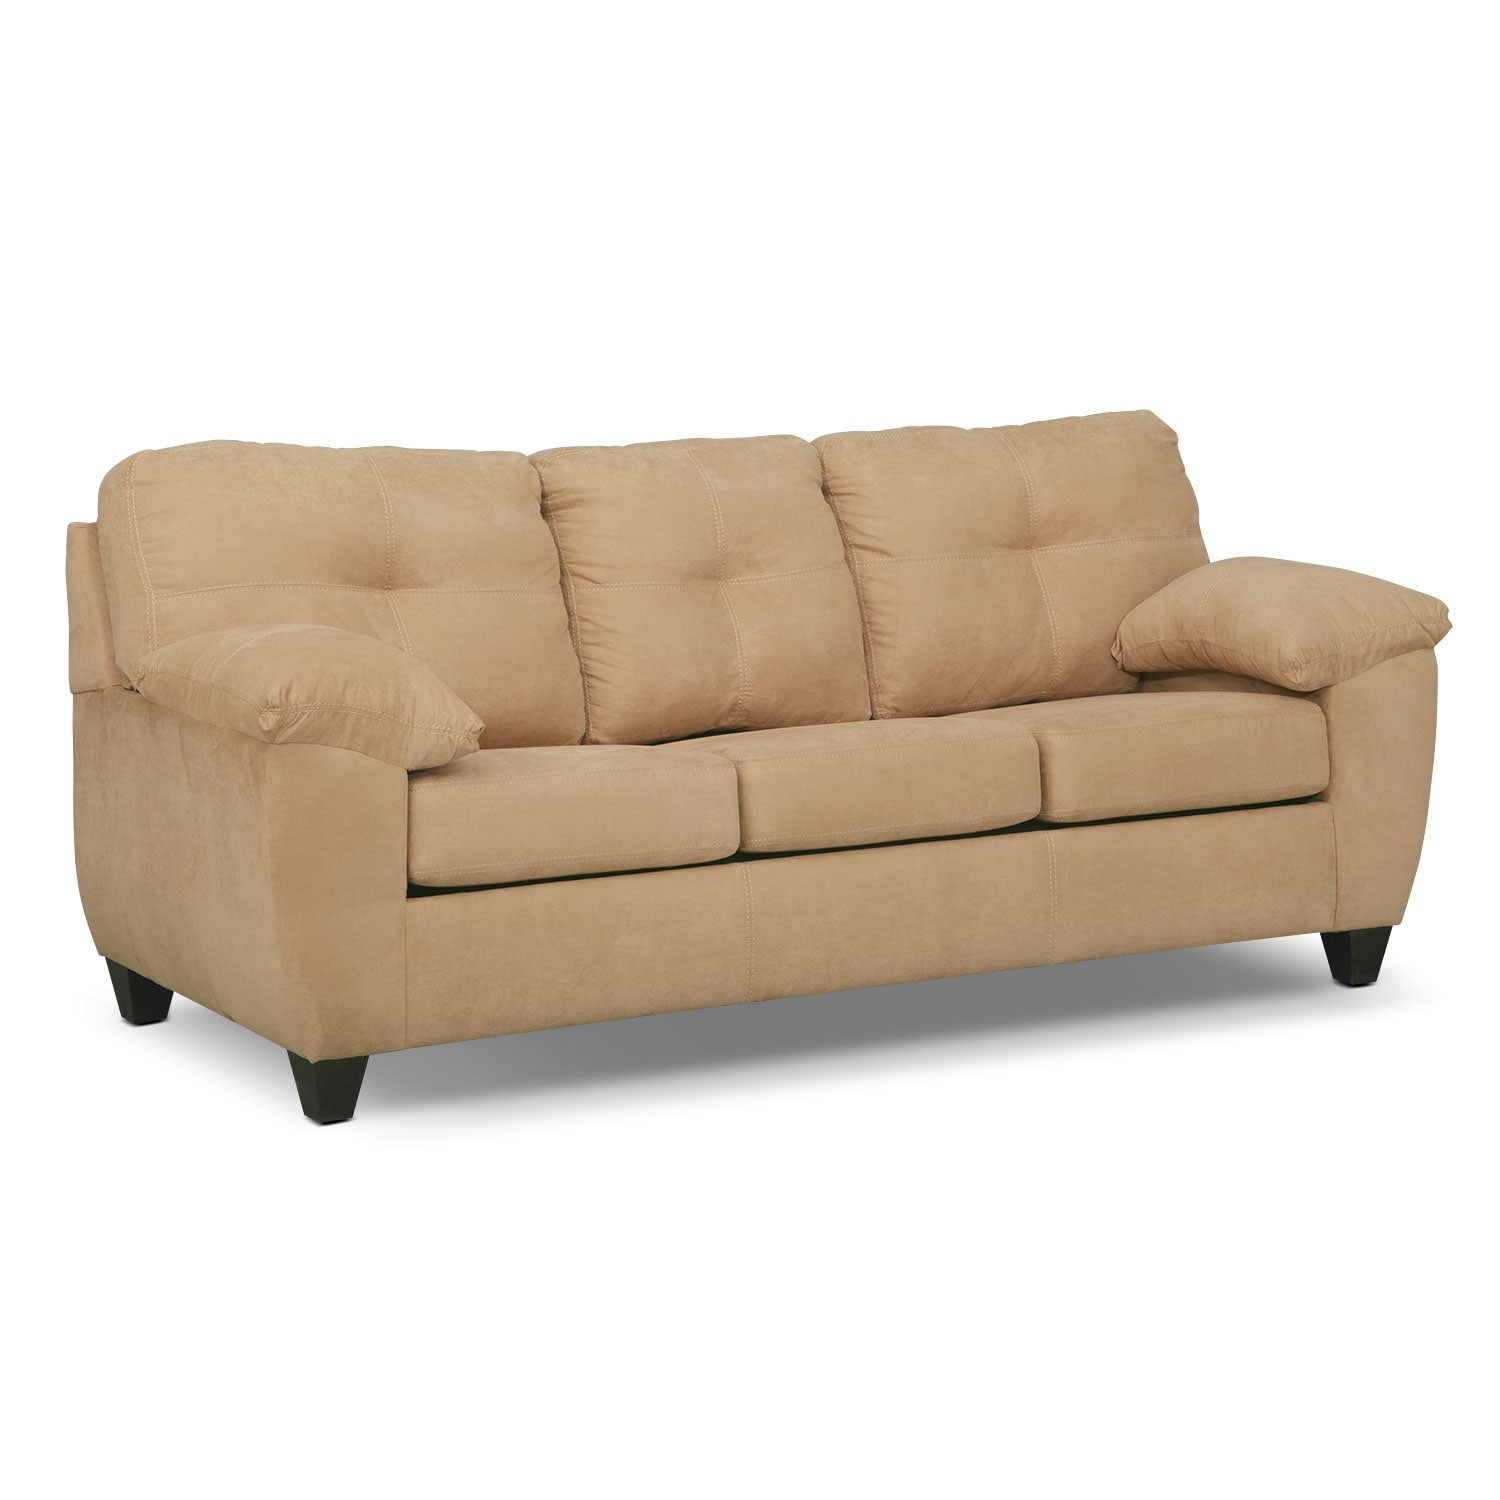 Ricardo Queen Memory Foam Sleeper Sofa Camel American Signature Furniture